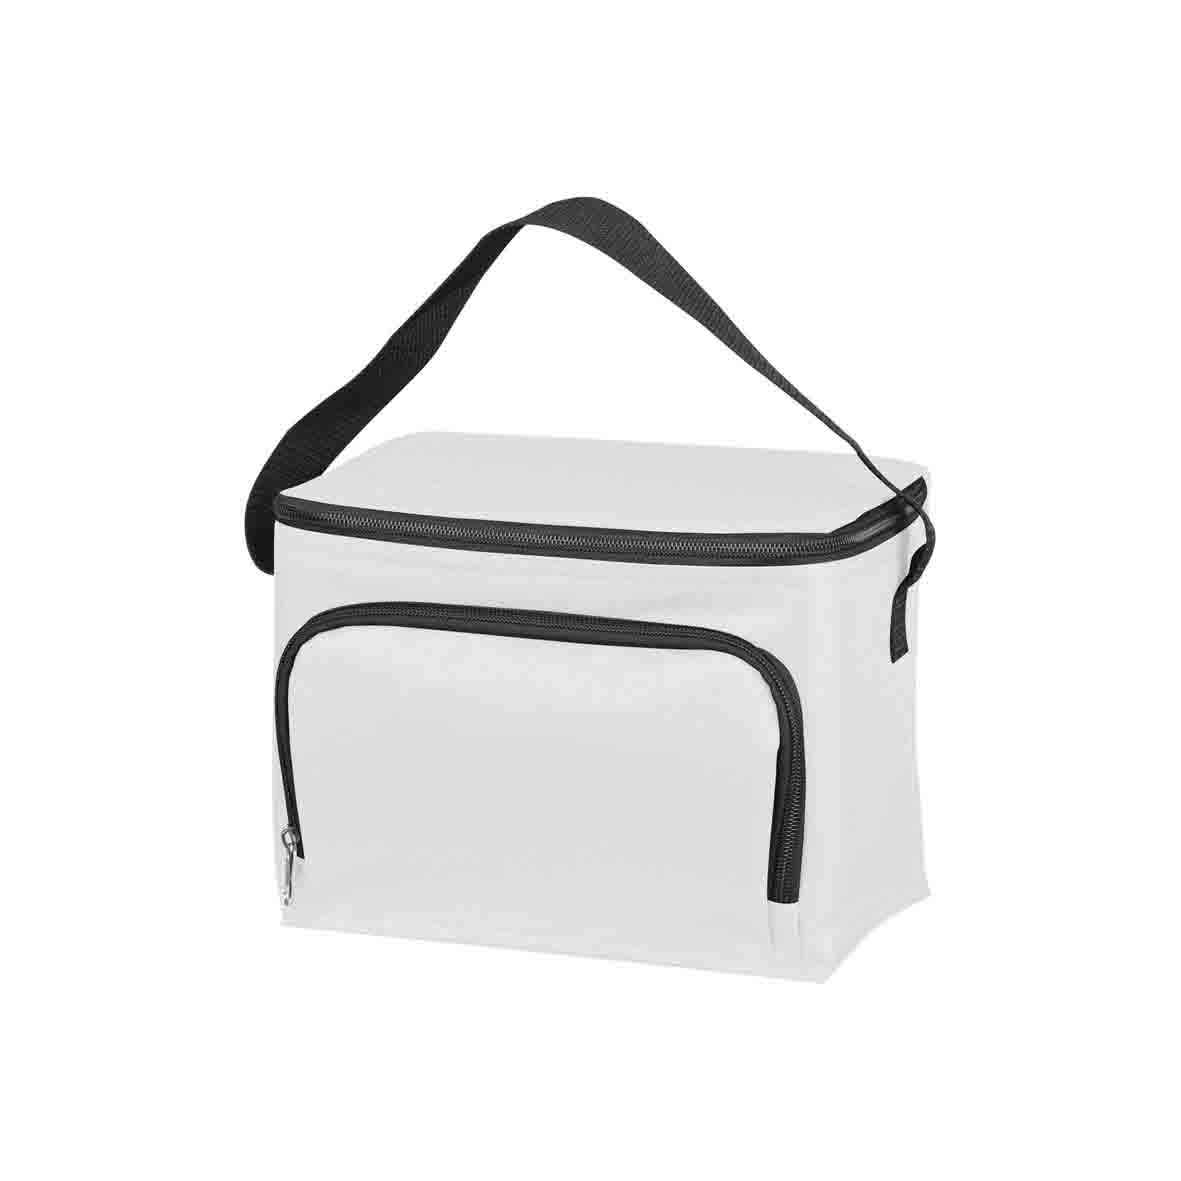 210D polyester cooler bag - White mac-6832106